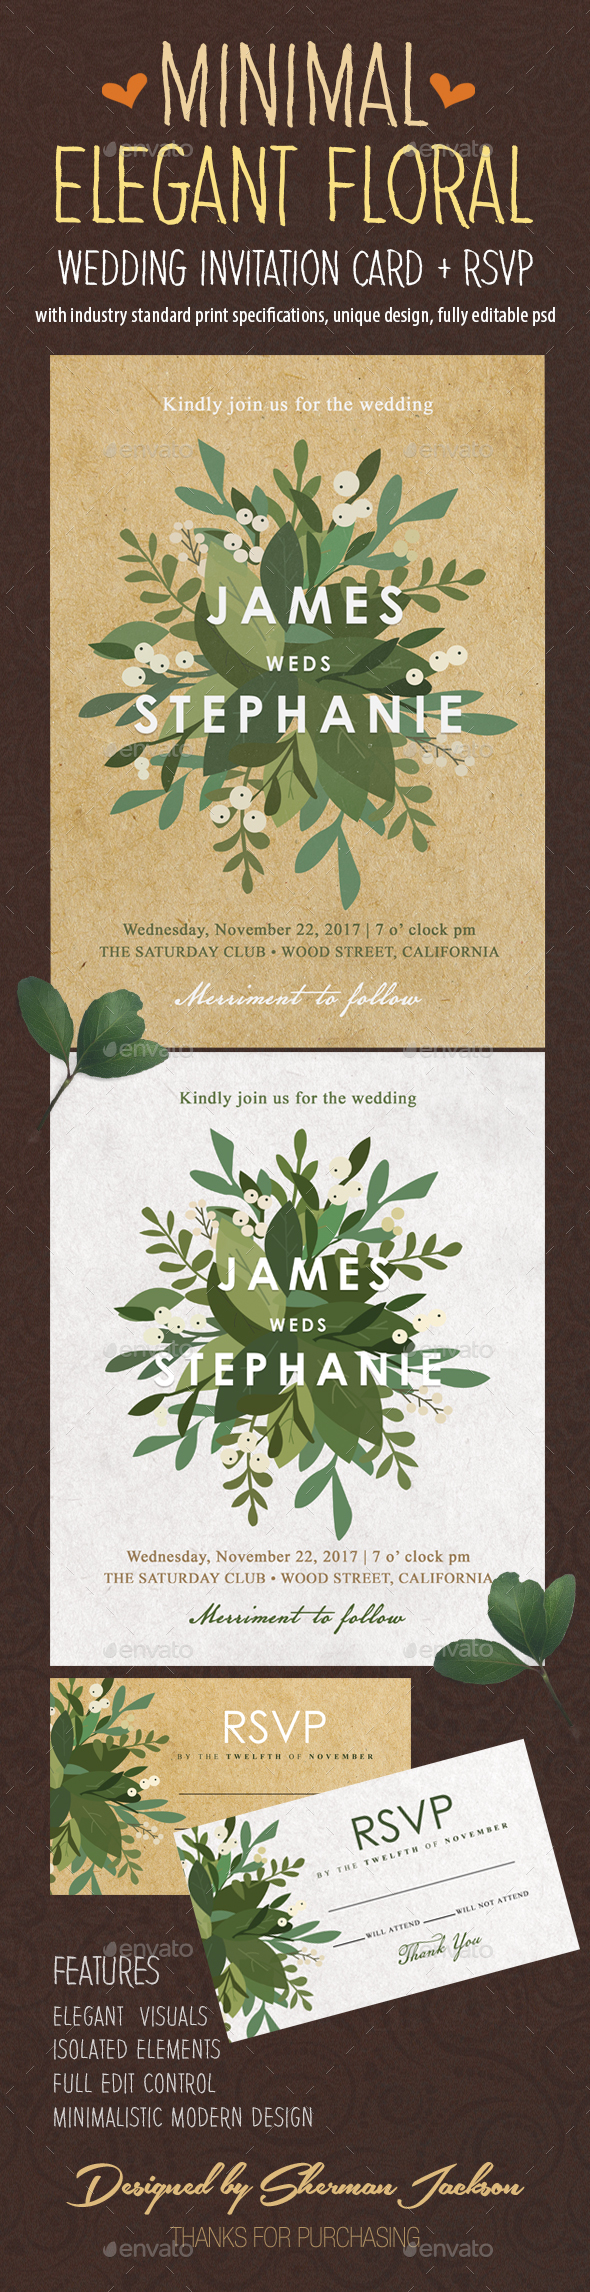 GraphicRiver Minimal Elegant Floral Wedding Invitation 20935673